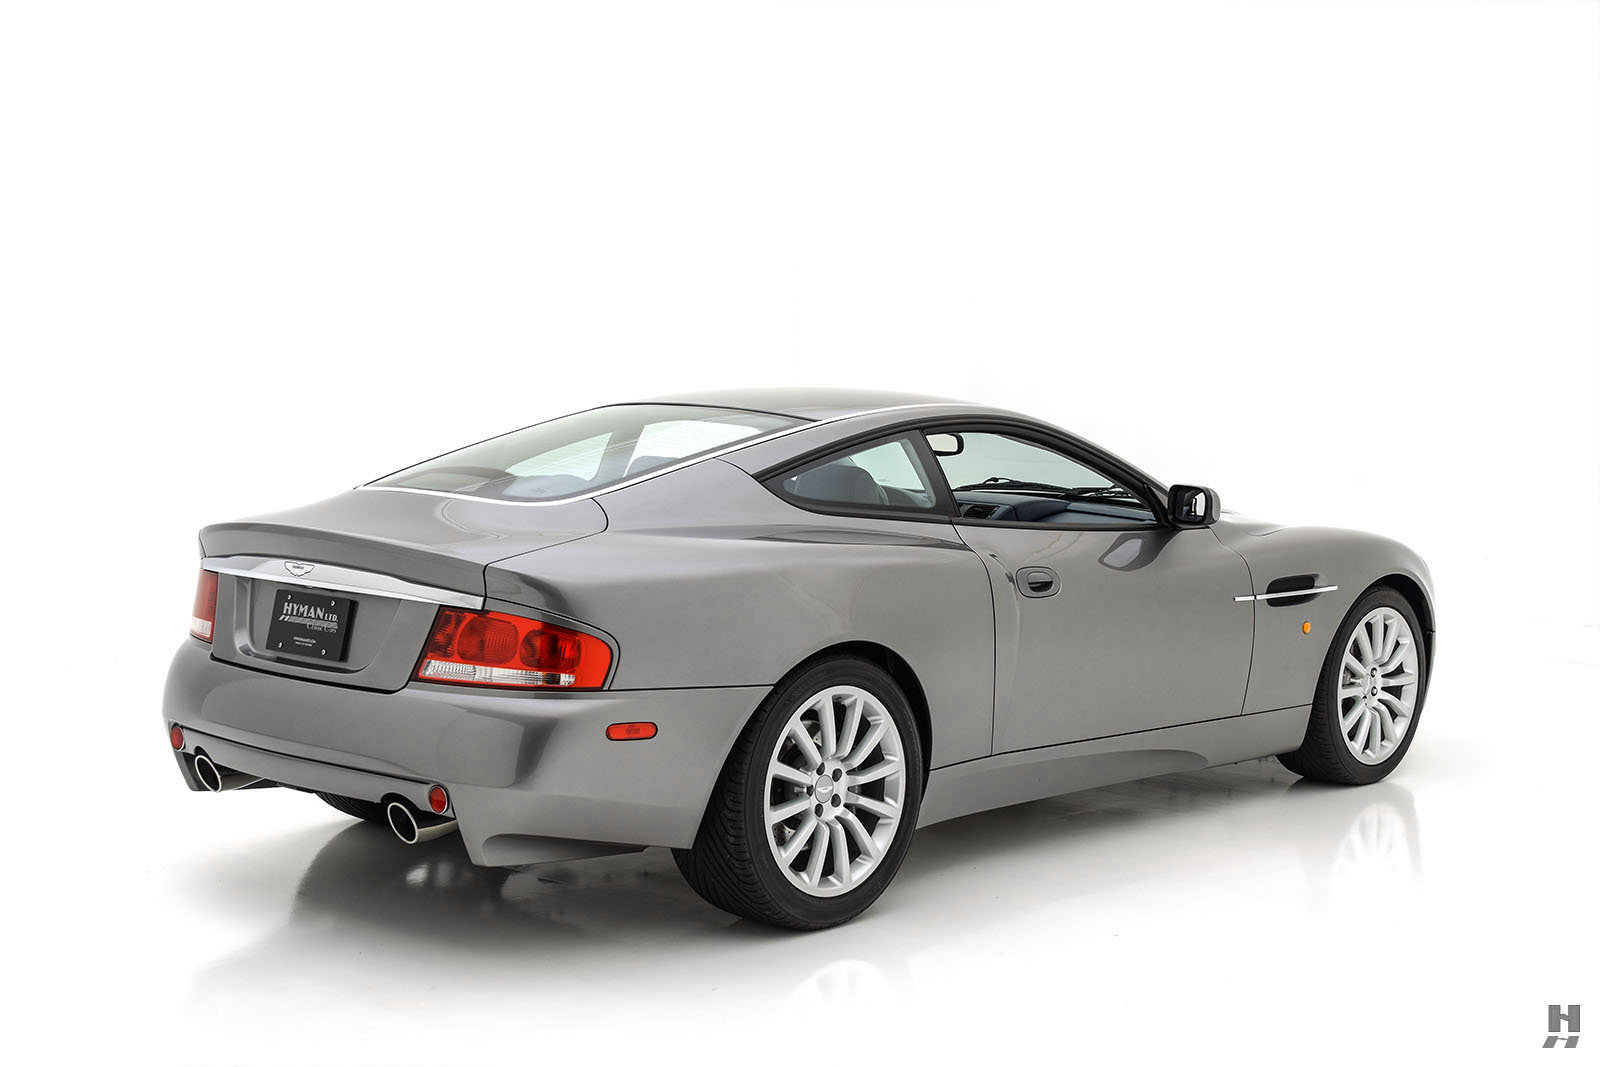 2002 ASTON MARTIN VANQUISH 6 SPEED MANUAL COUPE For Sale (picture 5 of 6)